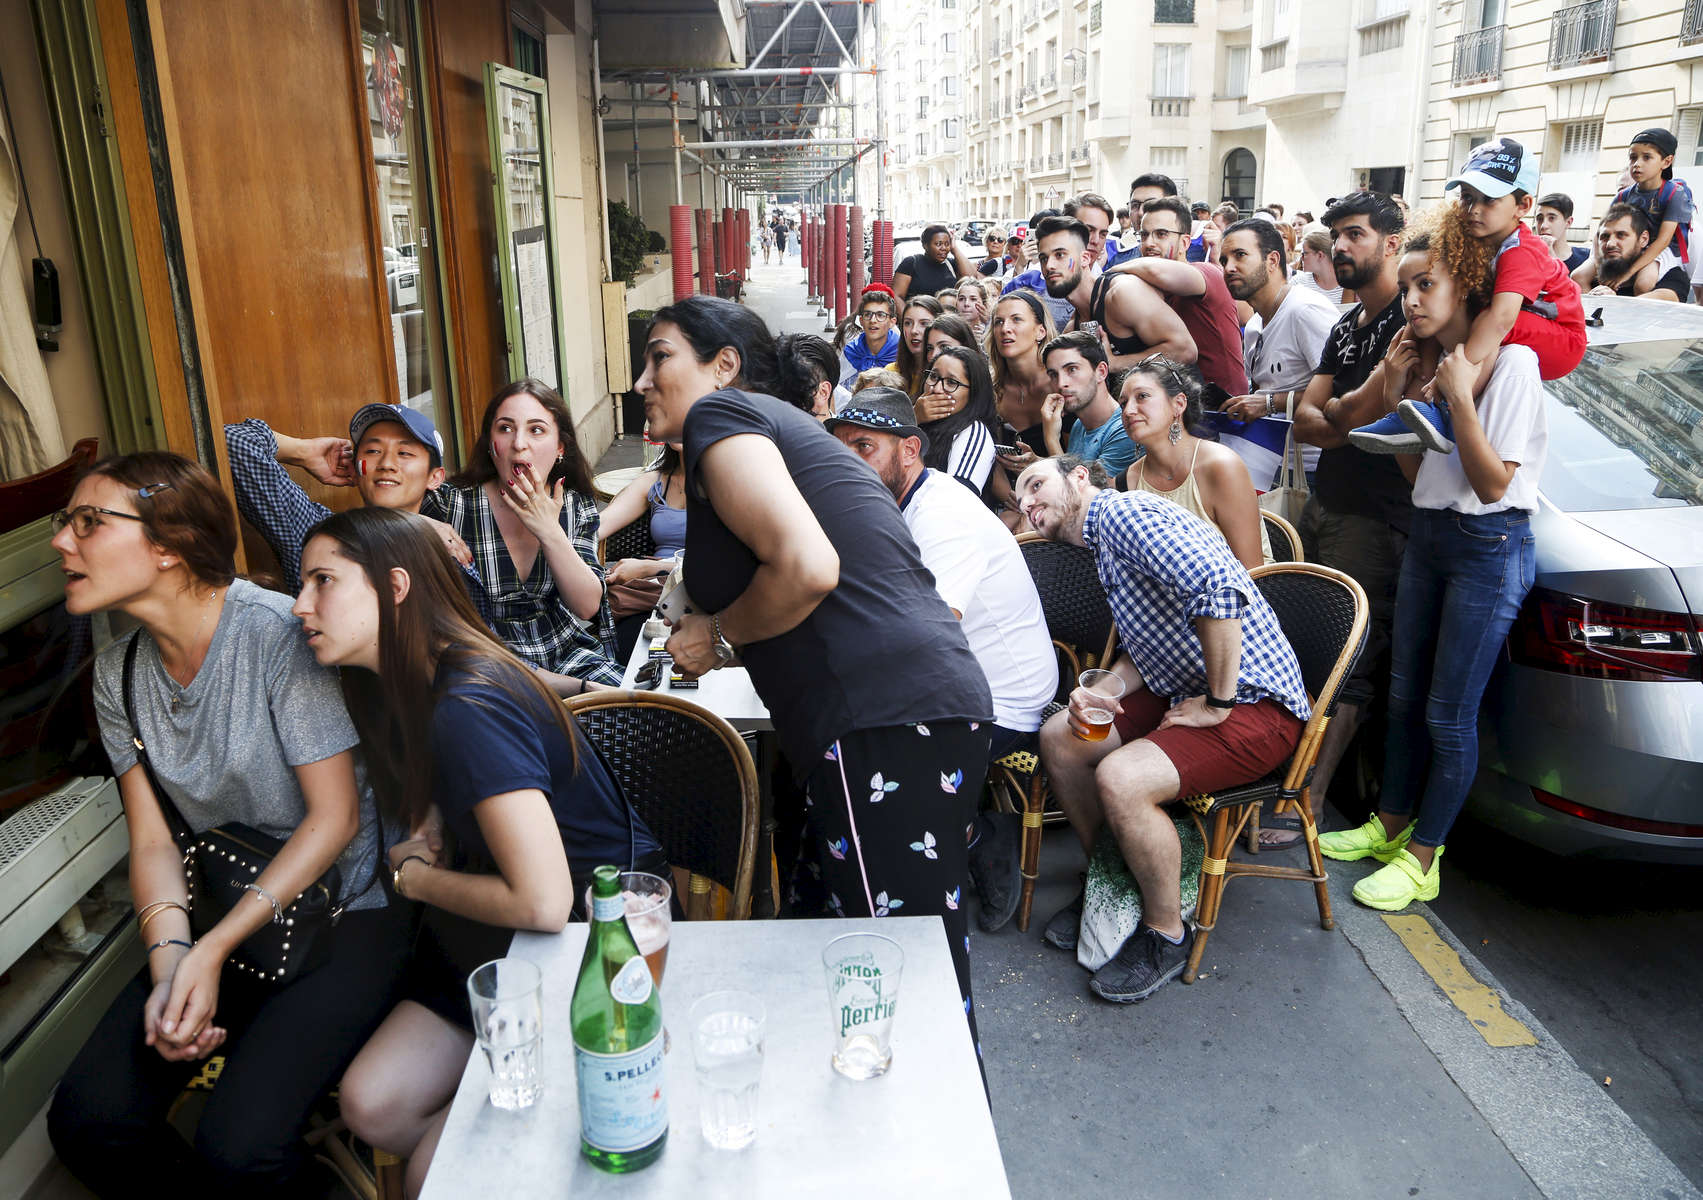 Supporters try to watch the World Cup Soccer final on the TV screen of a bar, on July 15, 2018, in Paris, France.On the historical Soccer World Cup final between France and Croatia, fans were invited to watch the game on giant screens set up in the Champs de Mars, in front of the Eiffel Tower in Paris. But this Fan Zone was full long before the start of the game, leaving thousand of supporters scrambling to find a place to watch the game close by. The nearby and usually quiet coffees and restaurants were quickly over flooded. But for the next two and a half hours, it did not matter to watch the game from the middle of the streets. Very few cars were circulating, because almost everyone in France was watching, or trying to watch the game.